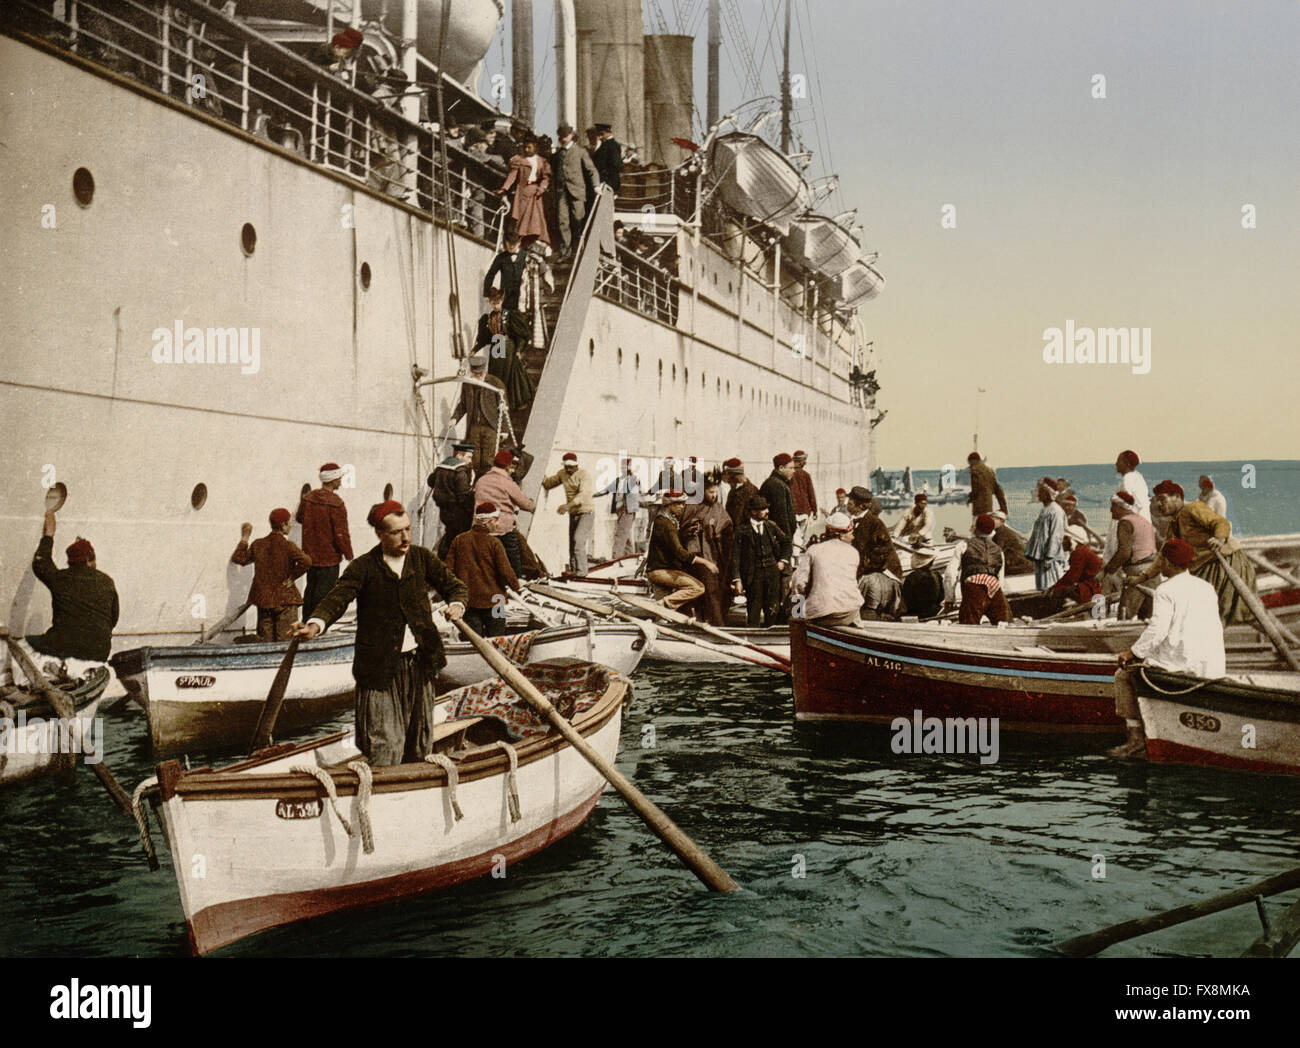 Passengers Disembarking from Cruise Ship, Algiers, Algeria, Photochrome Print, circa 1899 Stock Photo